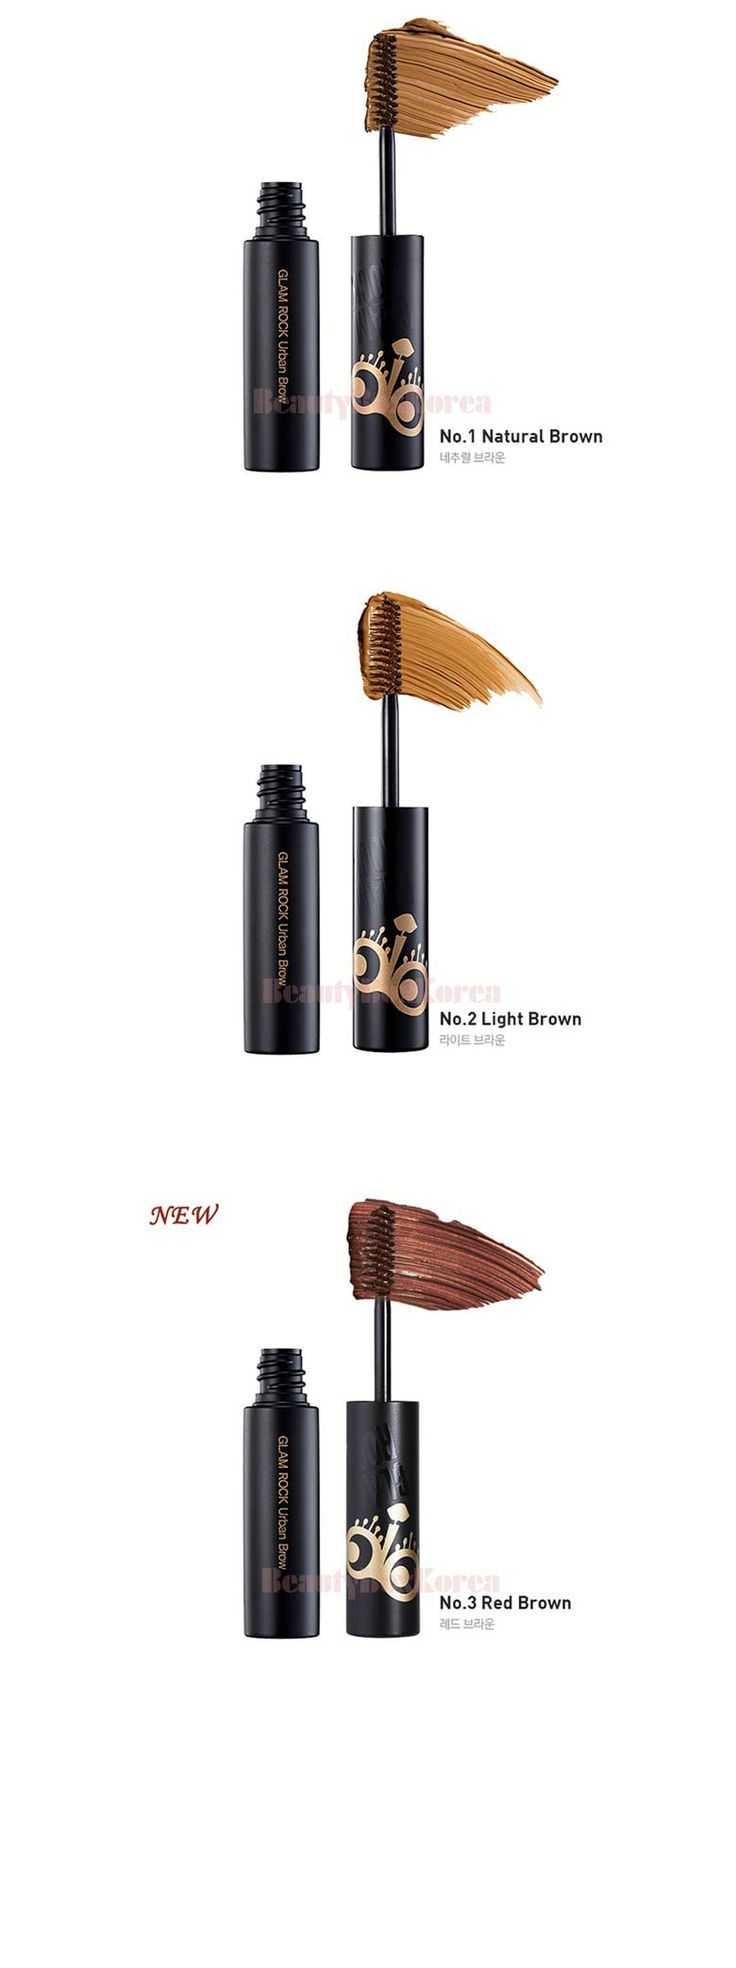 TOO COOL FOR SCHOOLl Glam Rock Urban Brow 5ml Best deal at Beauty Box Korea TOO COOL FOR SCHOOLl Glam Rock Urban Brow 5ml    Diagonal cutting brush easy to color any shape of eye brows easily. Give natural color and rich eye brow look. St